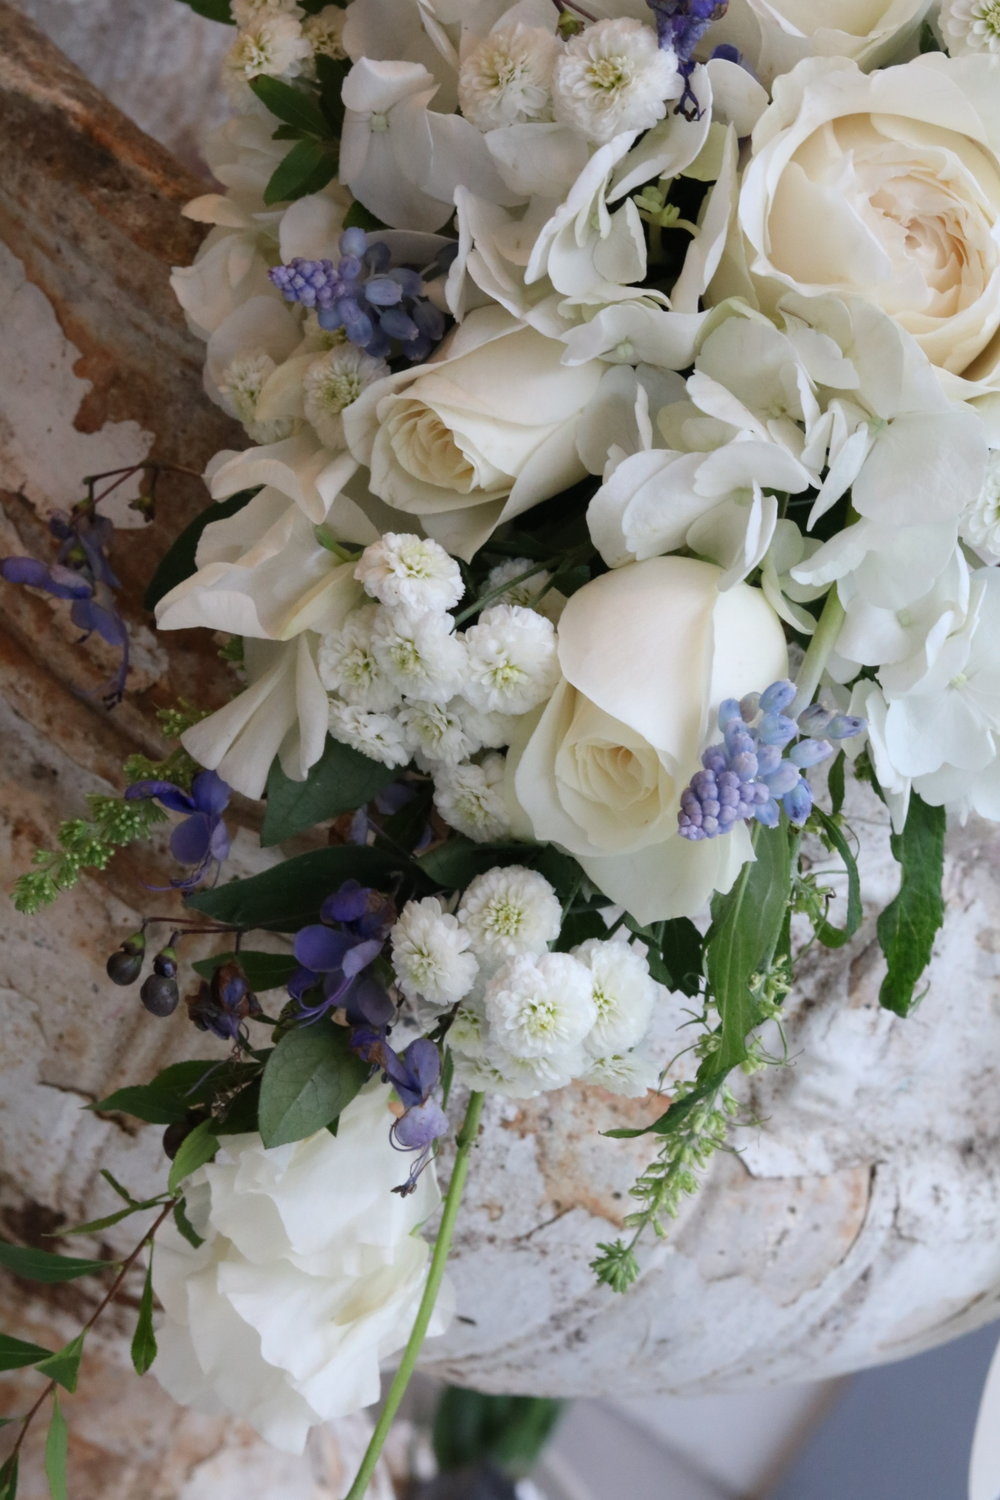 above image : shower bouquet from wedding flowers